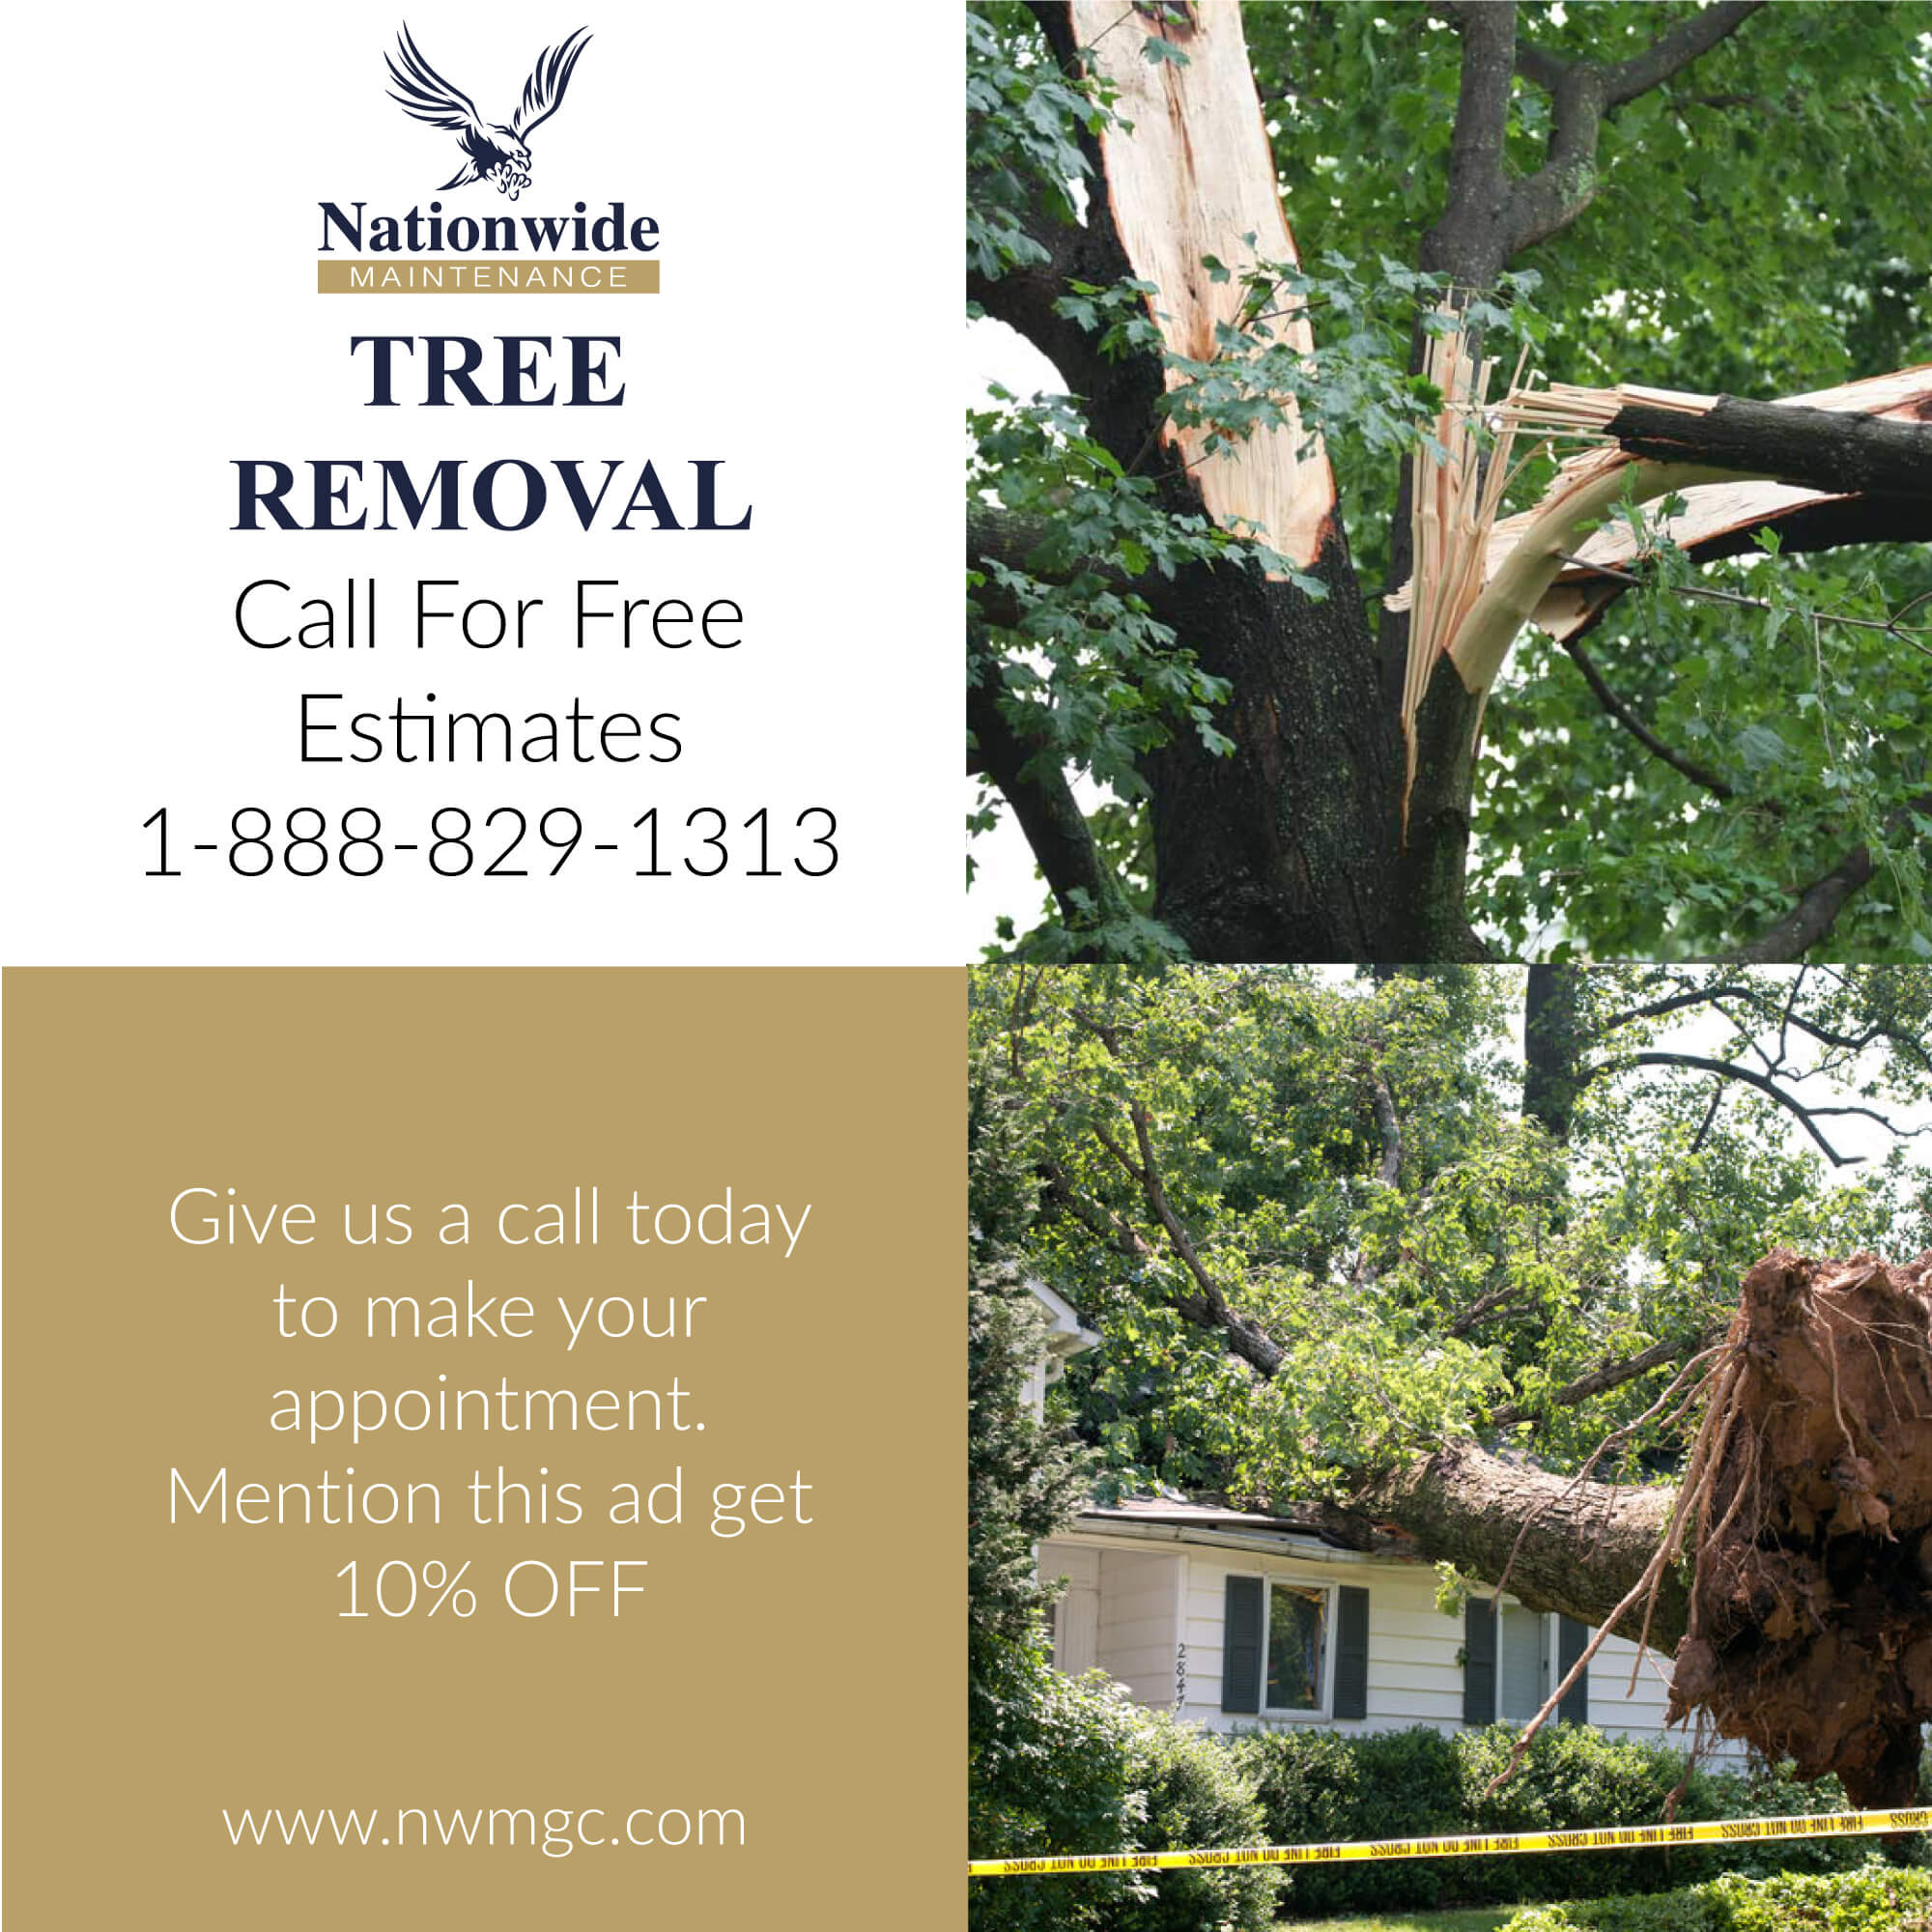 Tree Removal Nationwide Maintenance